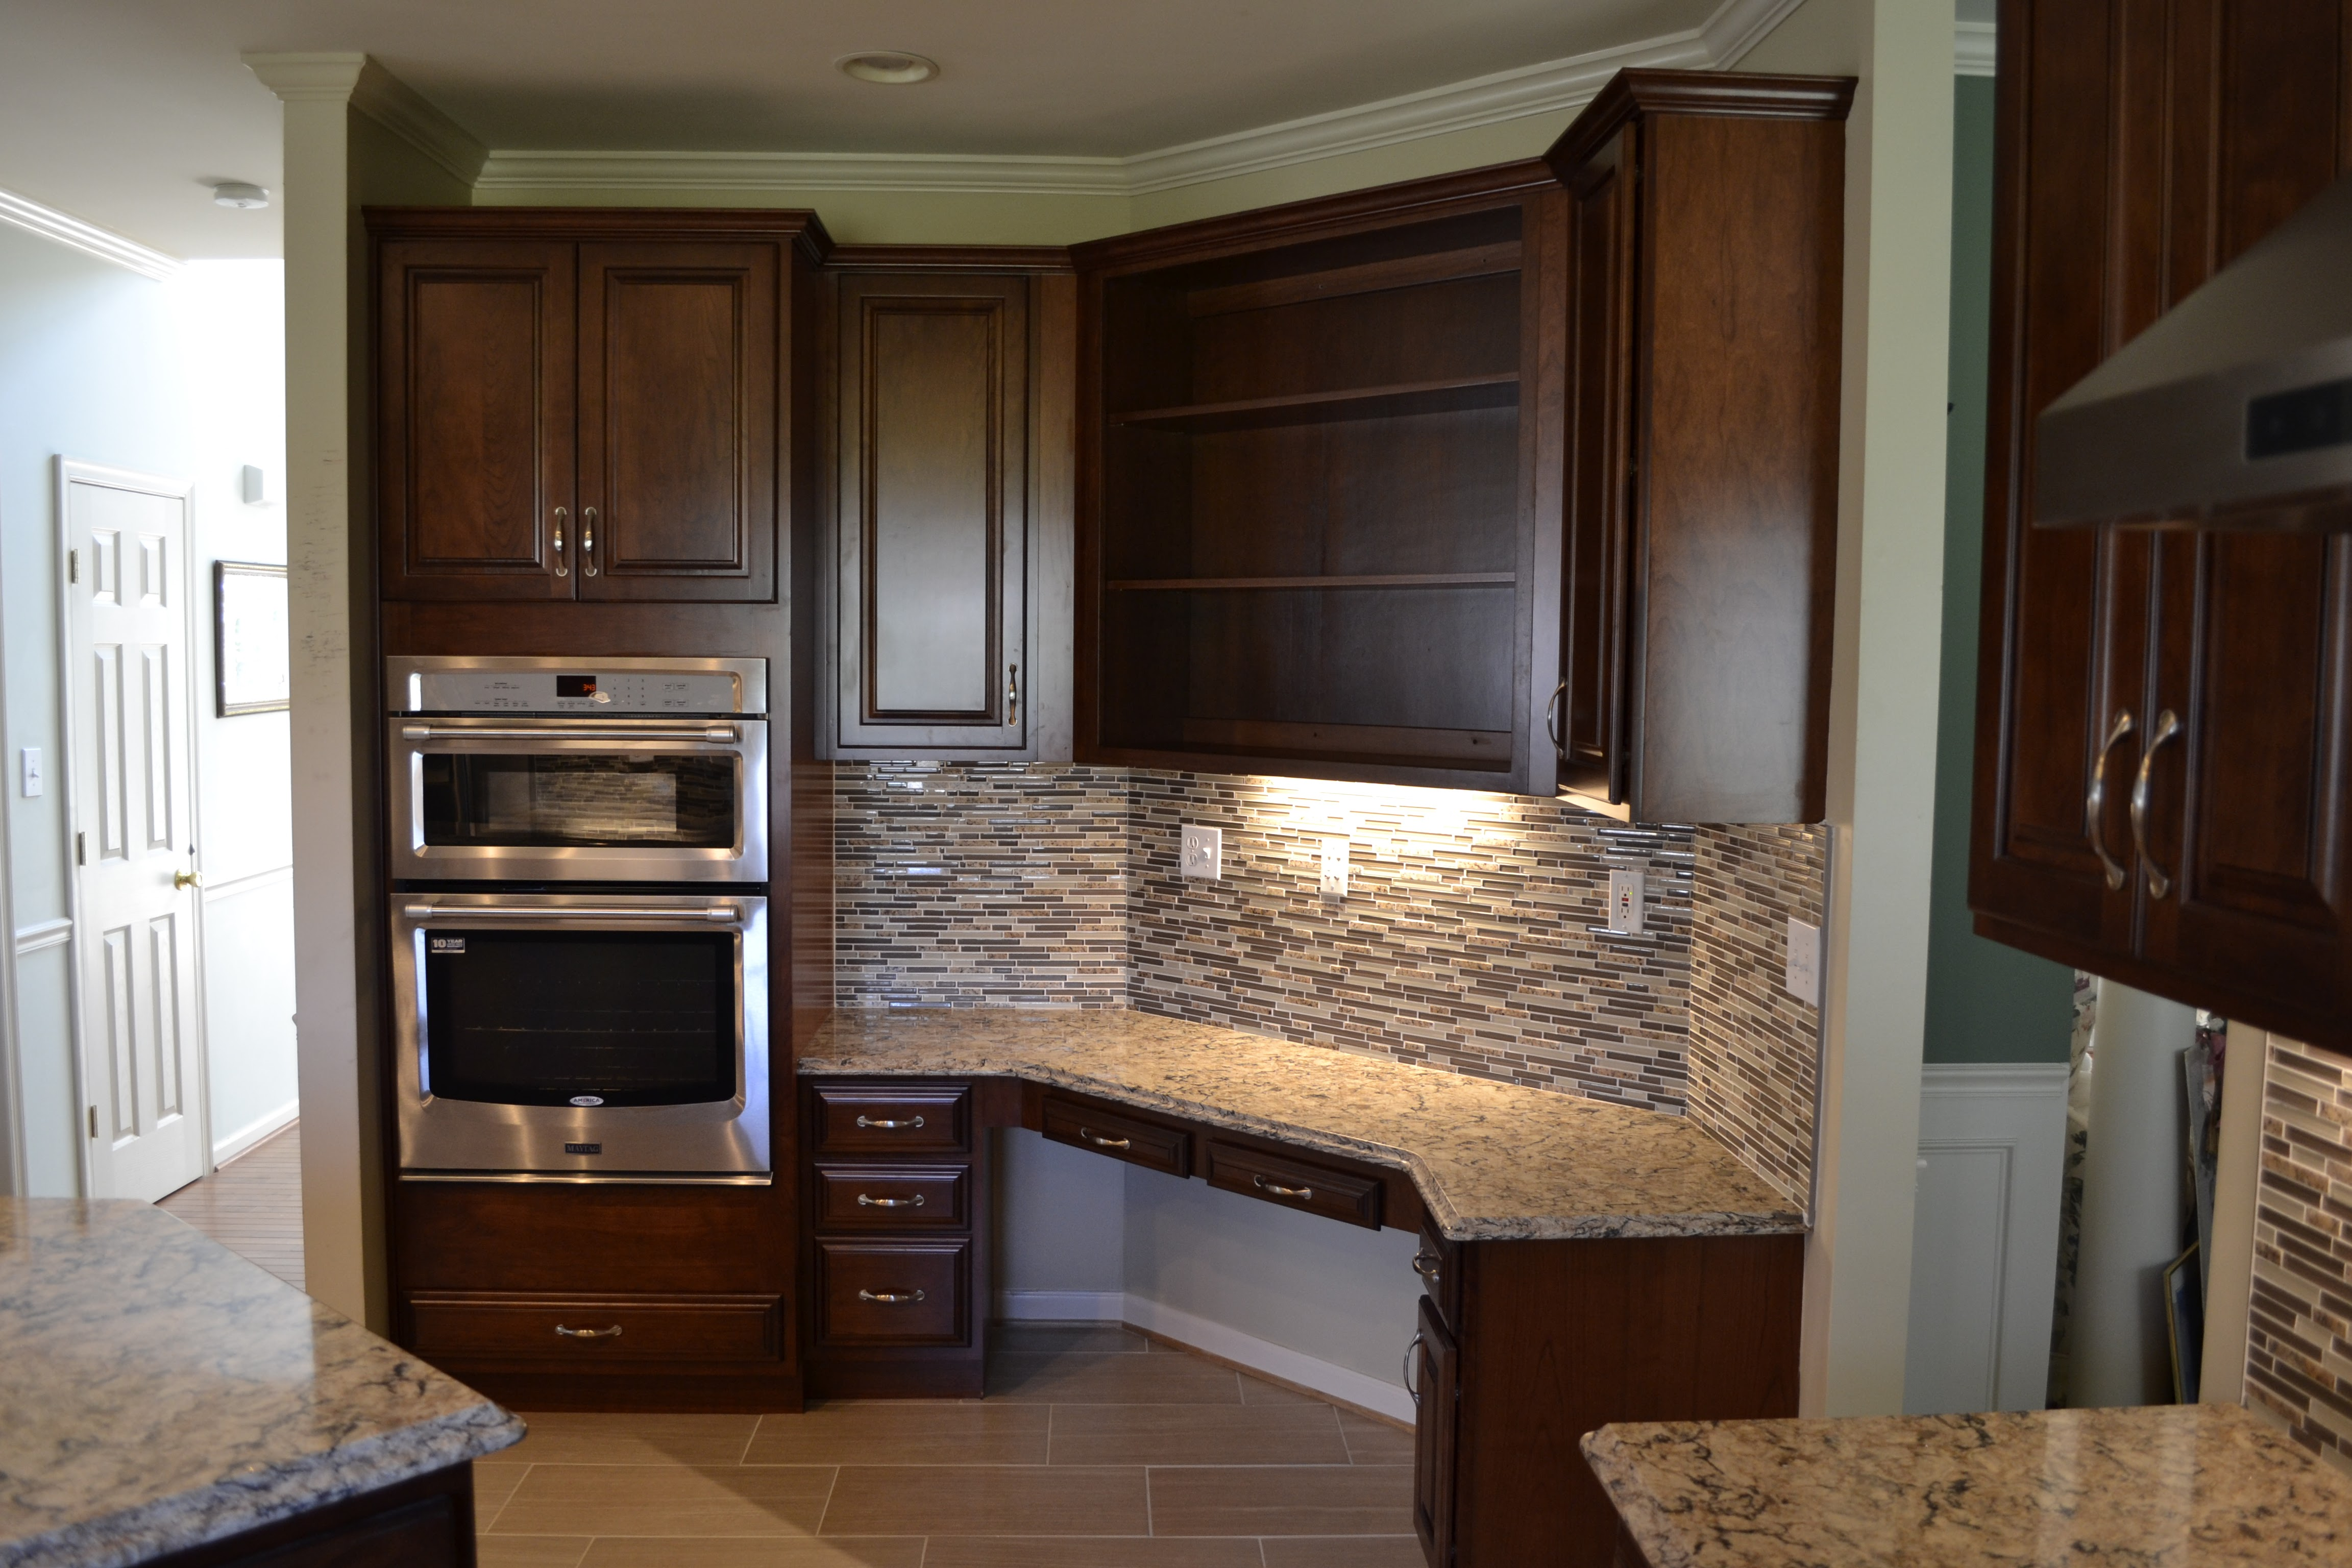 Kitchen Remodeling And How To Survive A Kitchen Remodel Artisan Kitchens Countertops